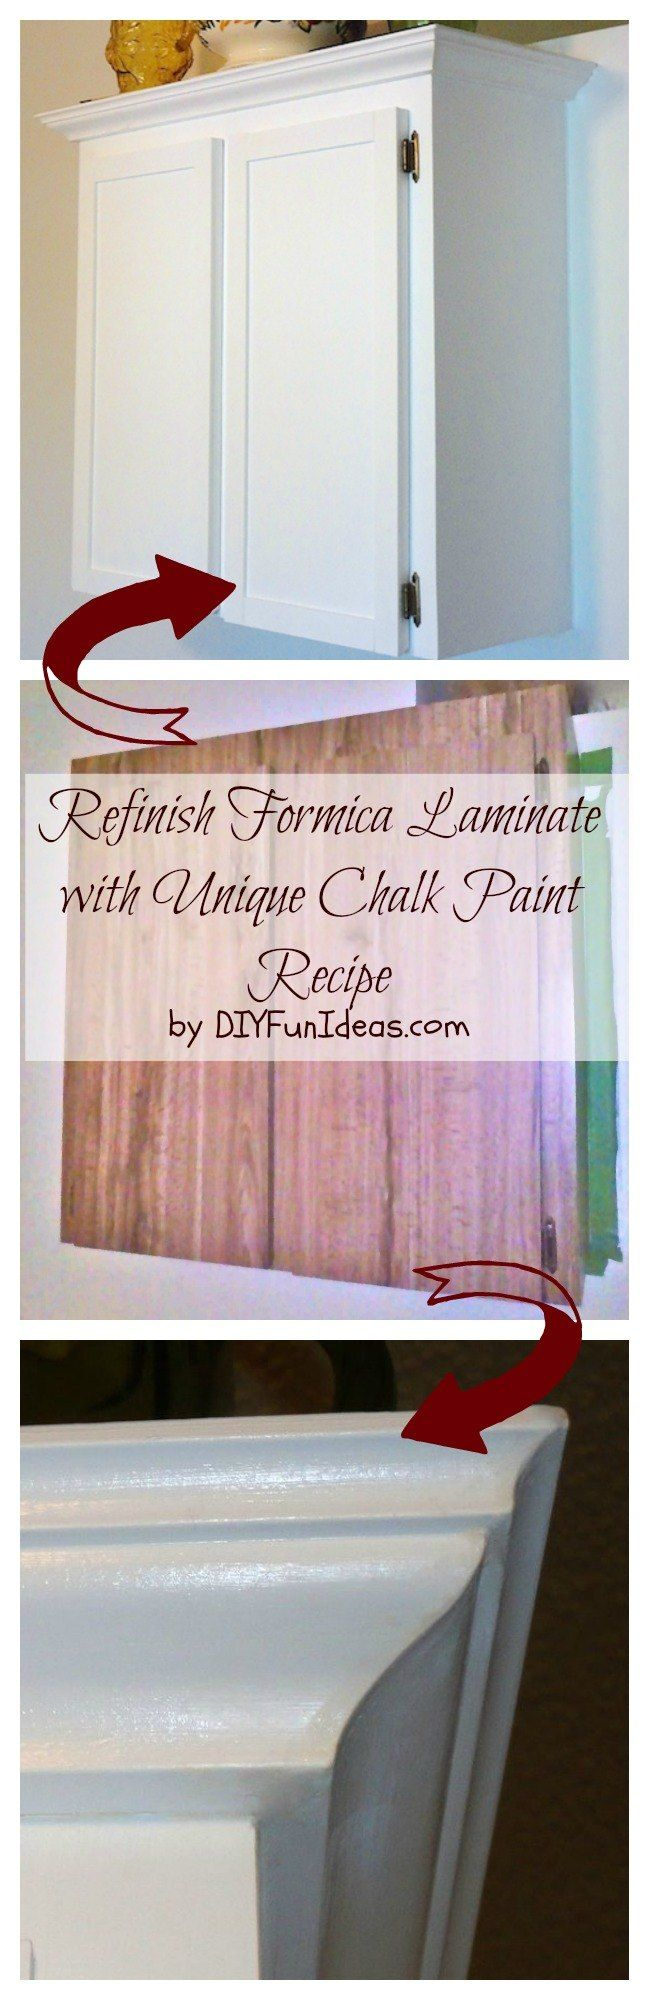 Formica cabinets on pinterest redo laminate cabinets for How to refinish old cabinets